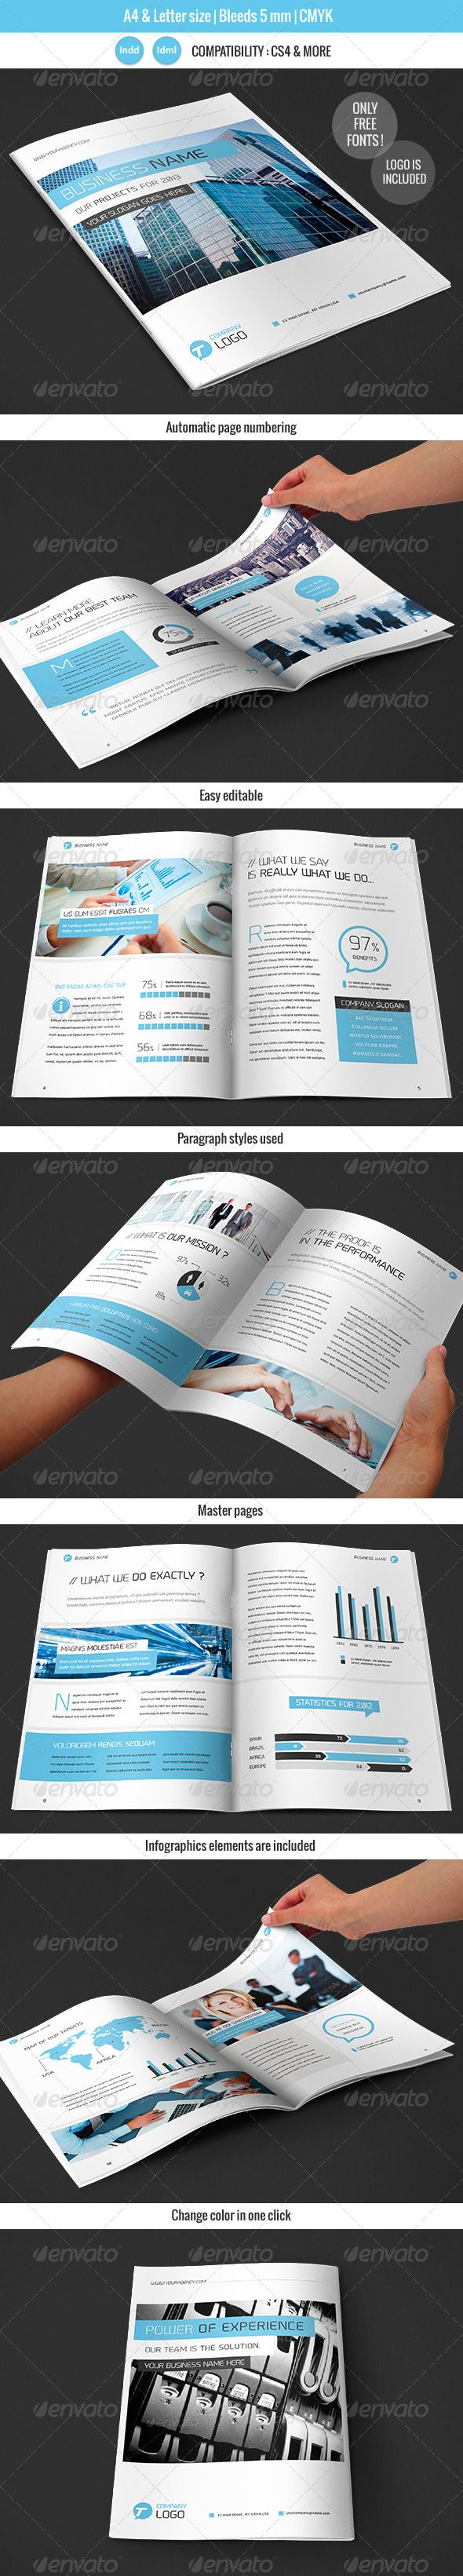 12 best corporate brochure examples images on pinterest